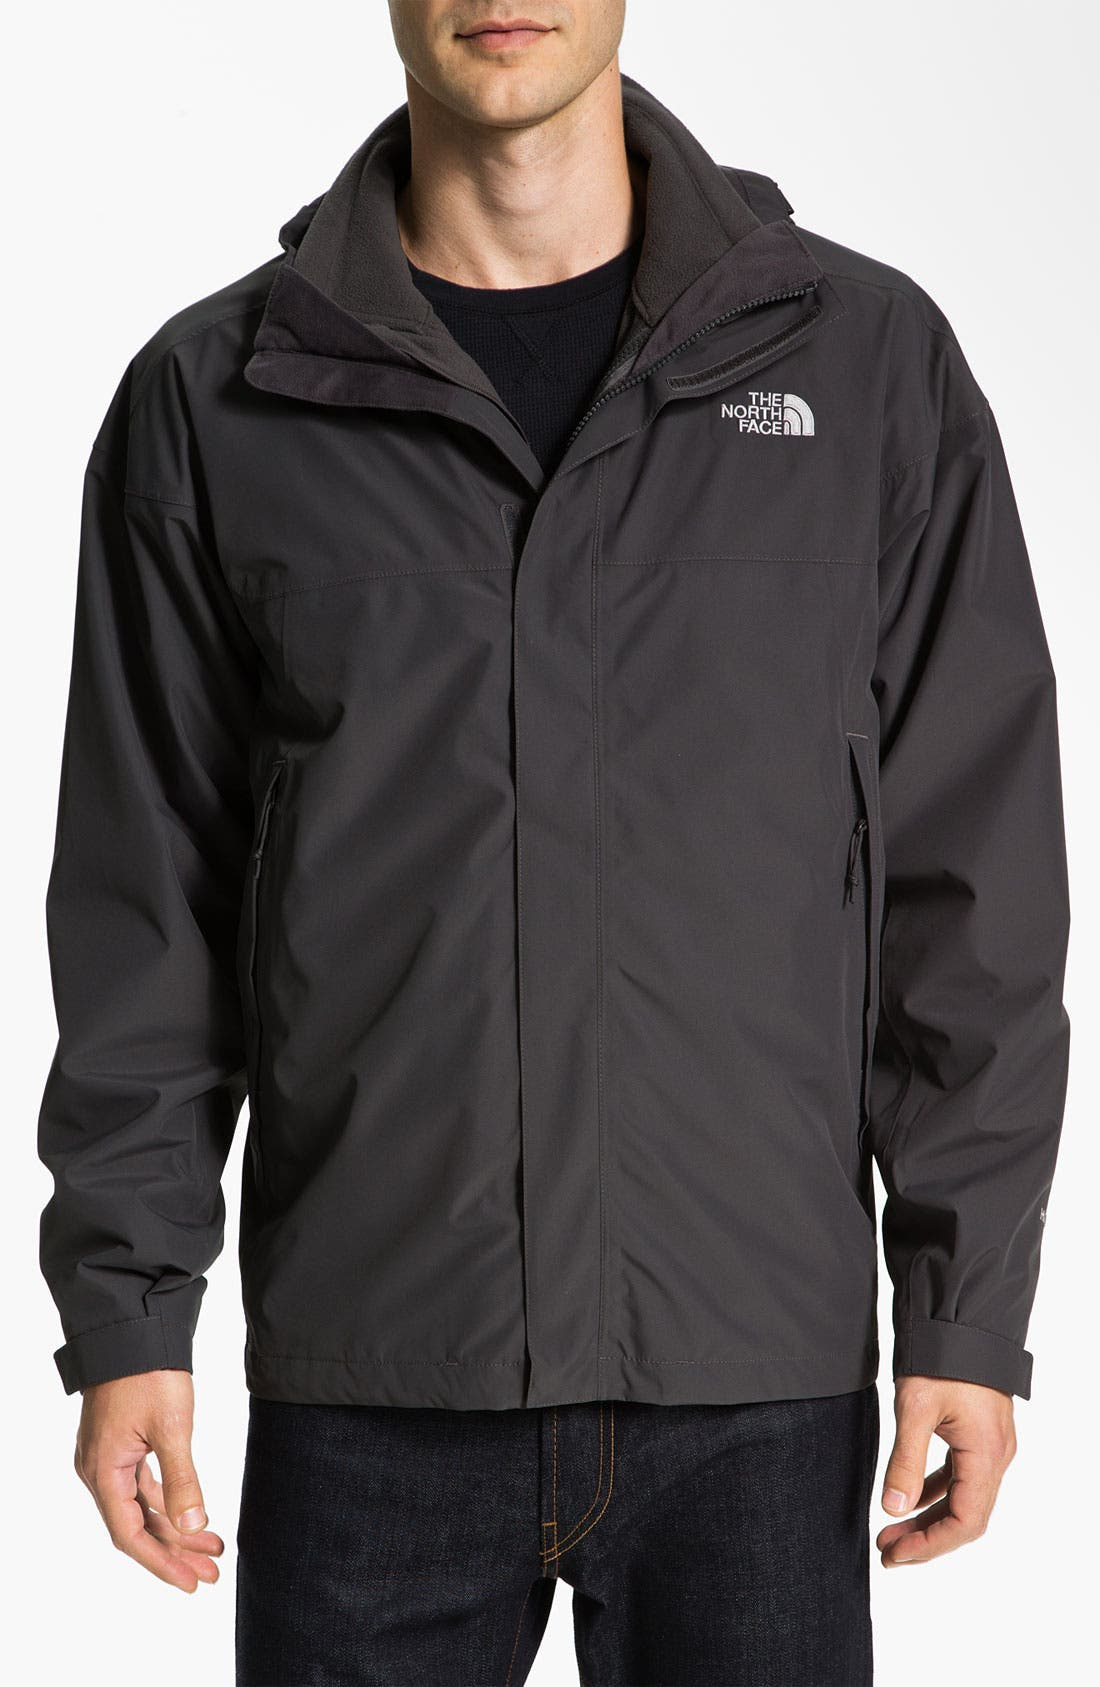 Main Image - The North Face 'Phere' TriClimate™ 3-in-1 Jacket